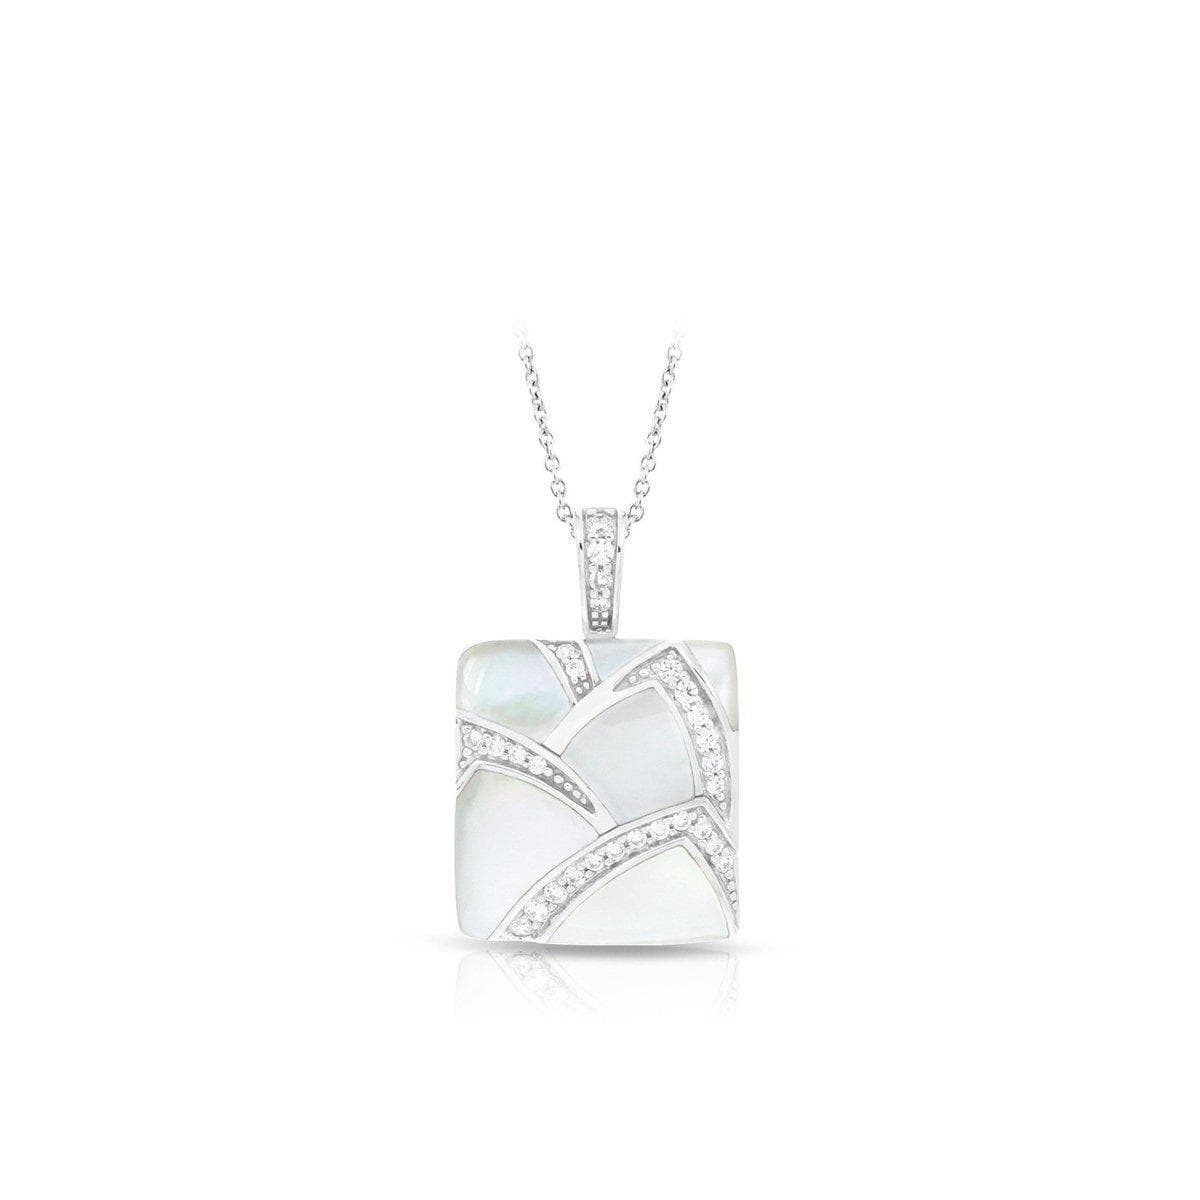 Sirena White Mother of Pearl Pendant-Belle Etoile-Renee Taylor Gallery